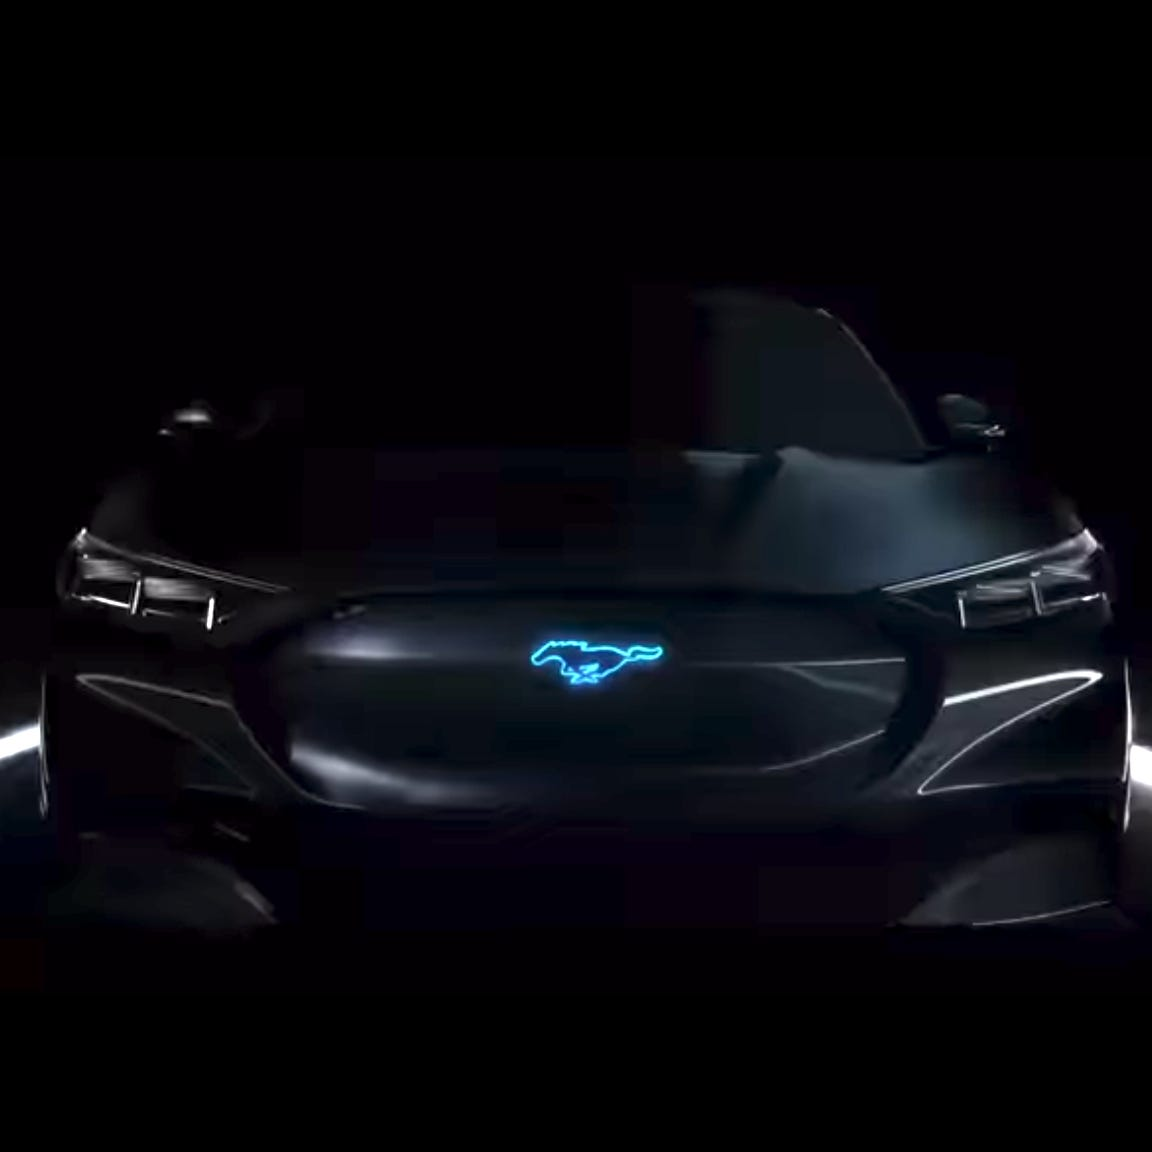 Ford gets snarky with new ad campaign